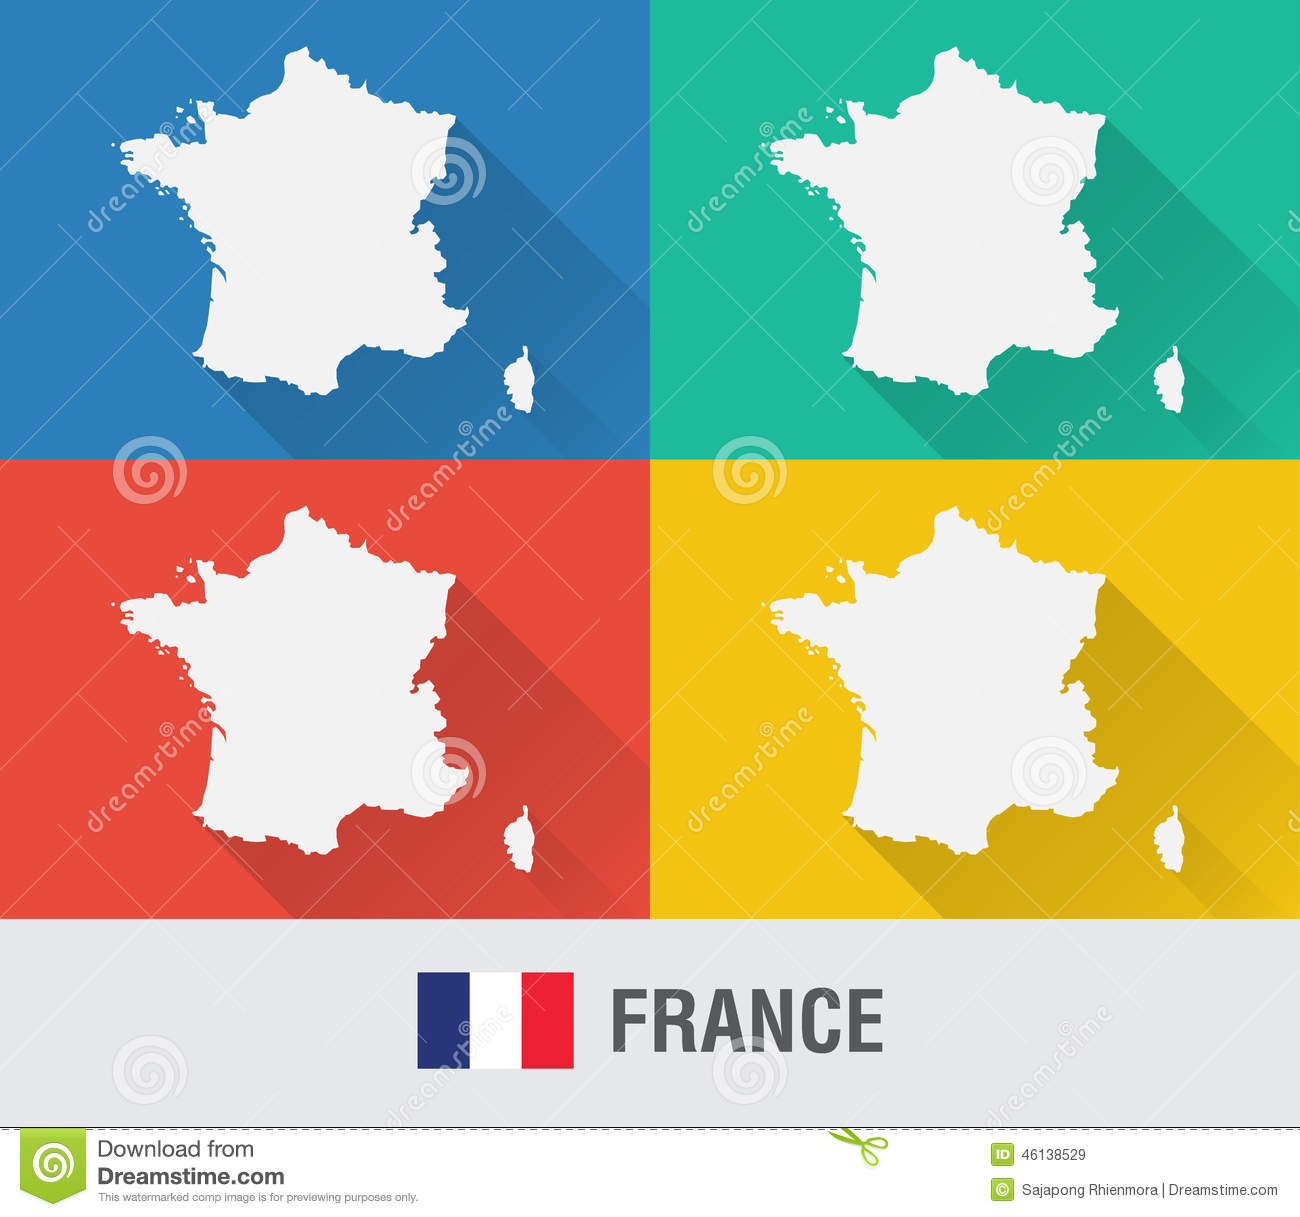 France world map in flat style with 4 colors stock vector france world map in flat style with 4 colors gumiabroncs Gallery